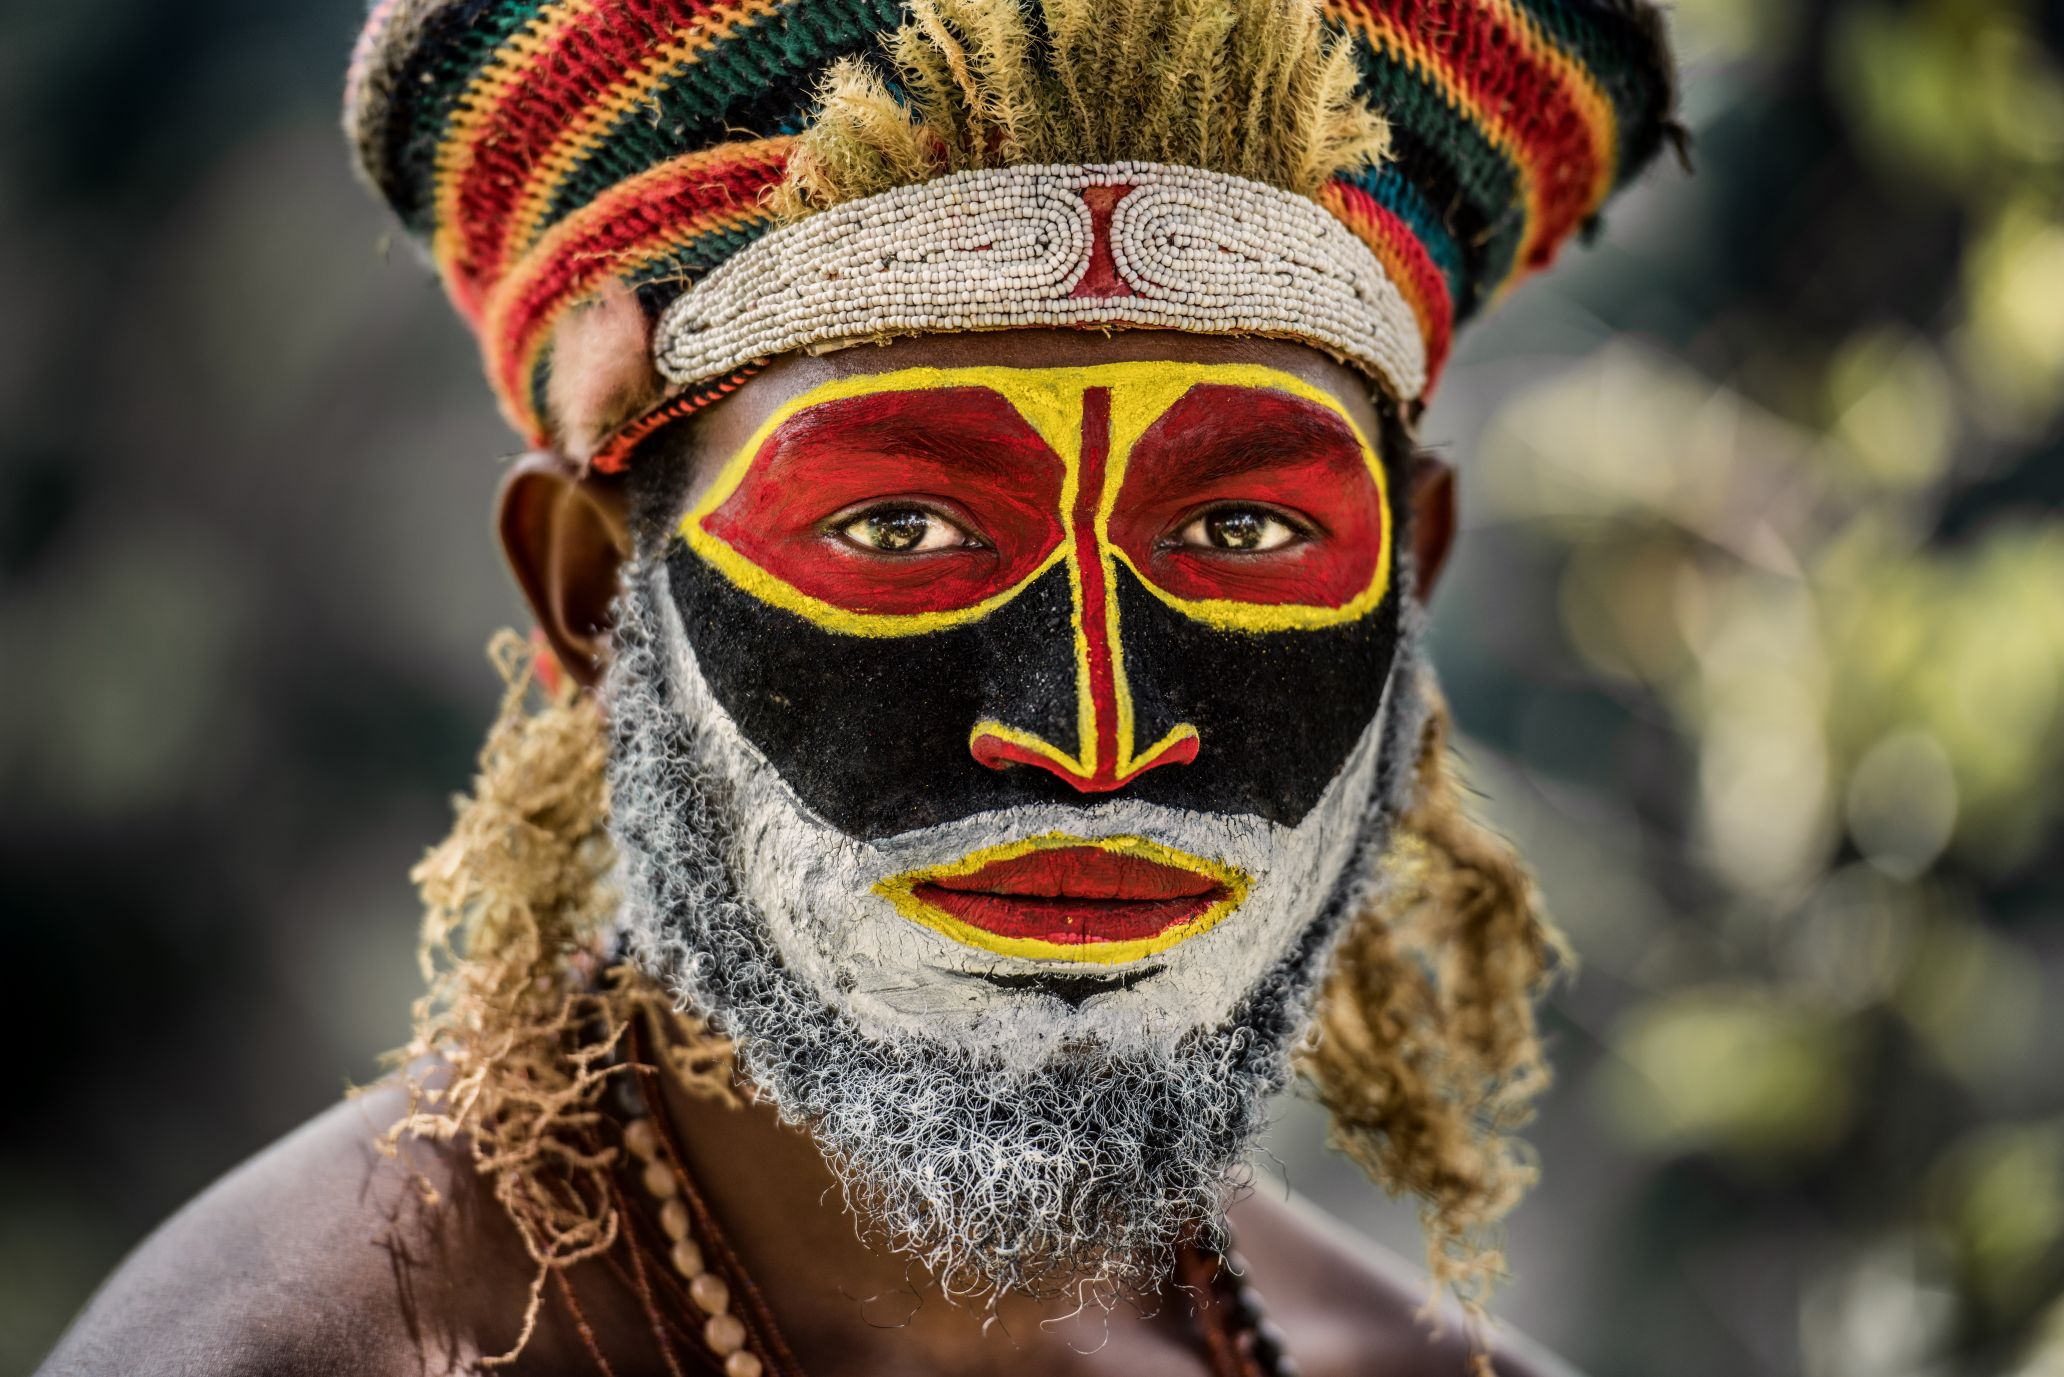 A tribeman in Papua New Guinea